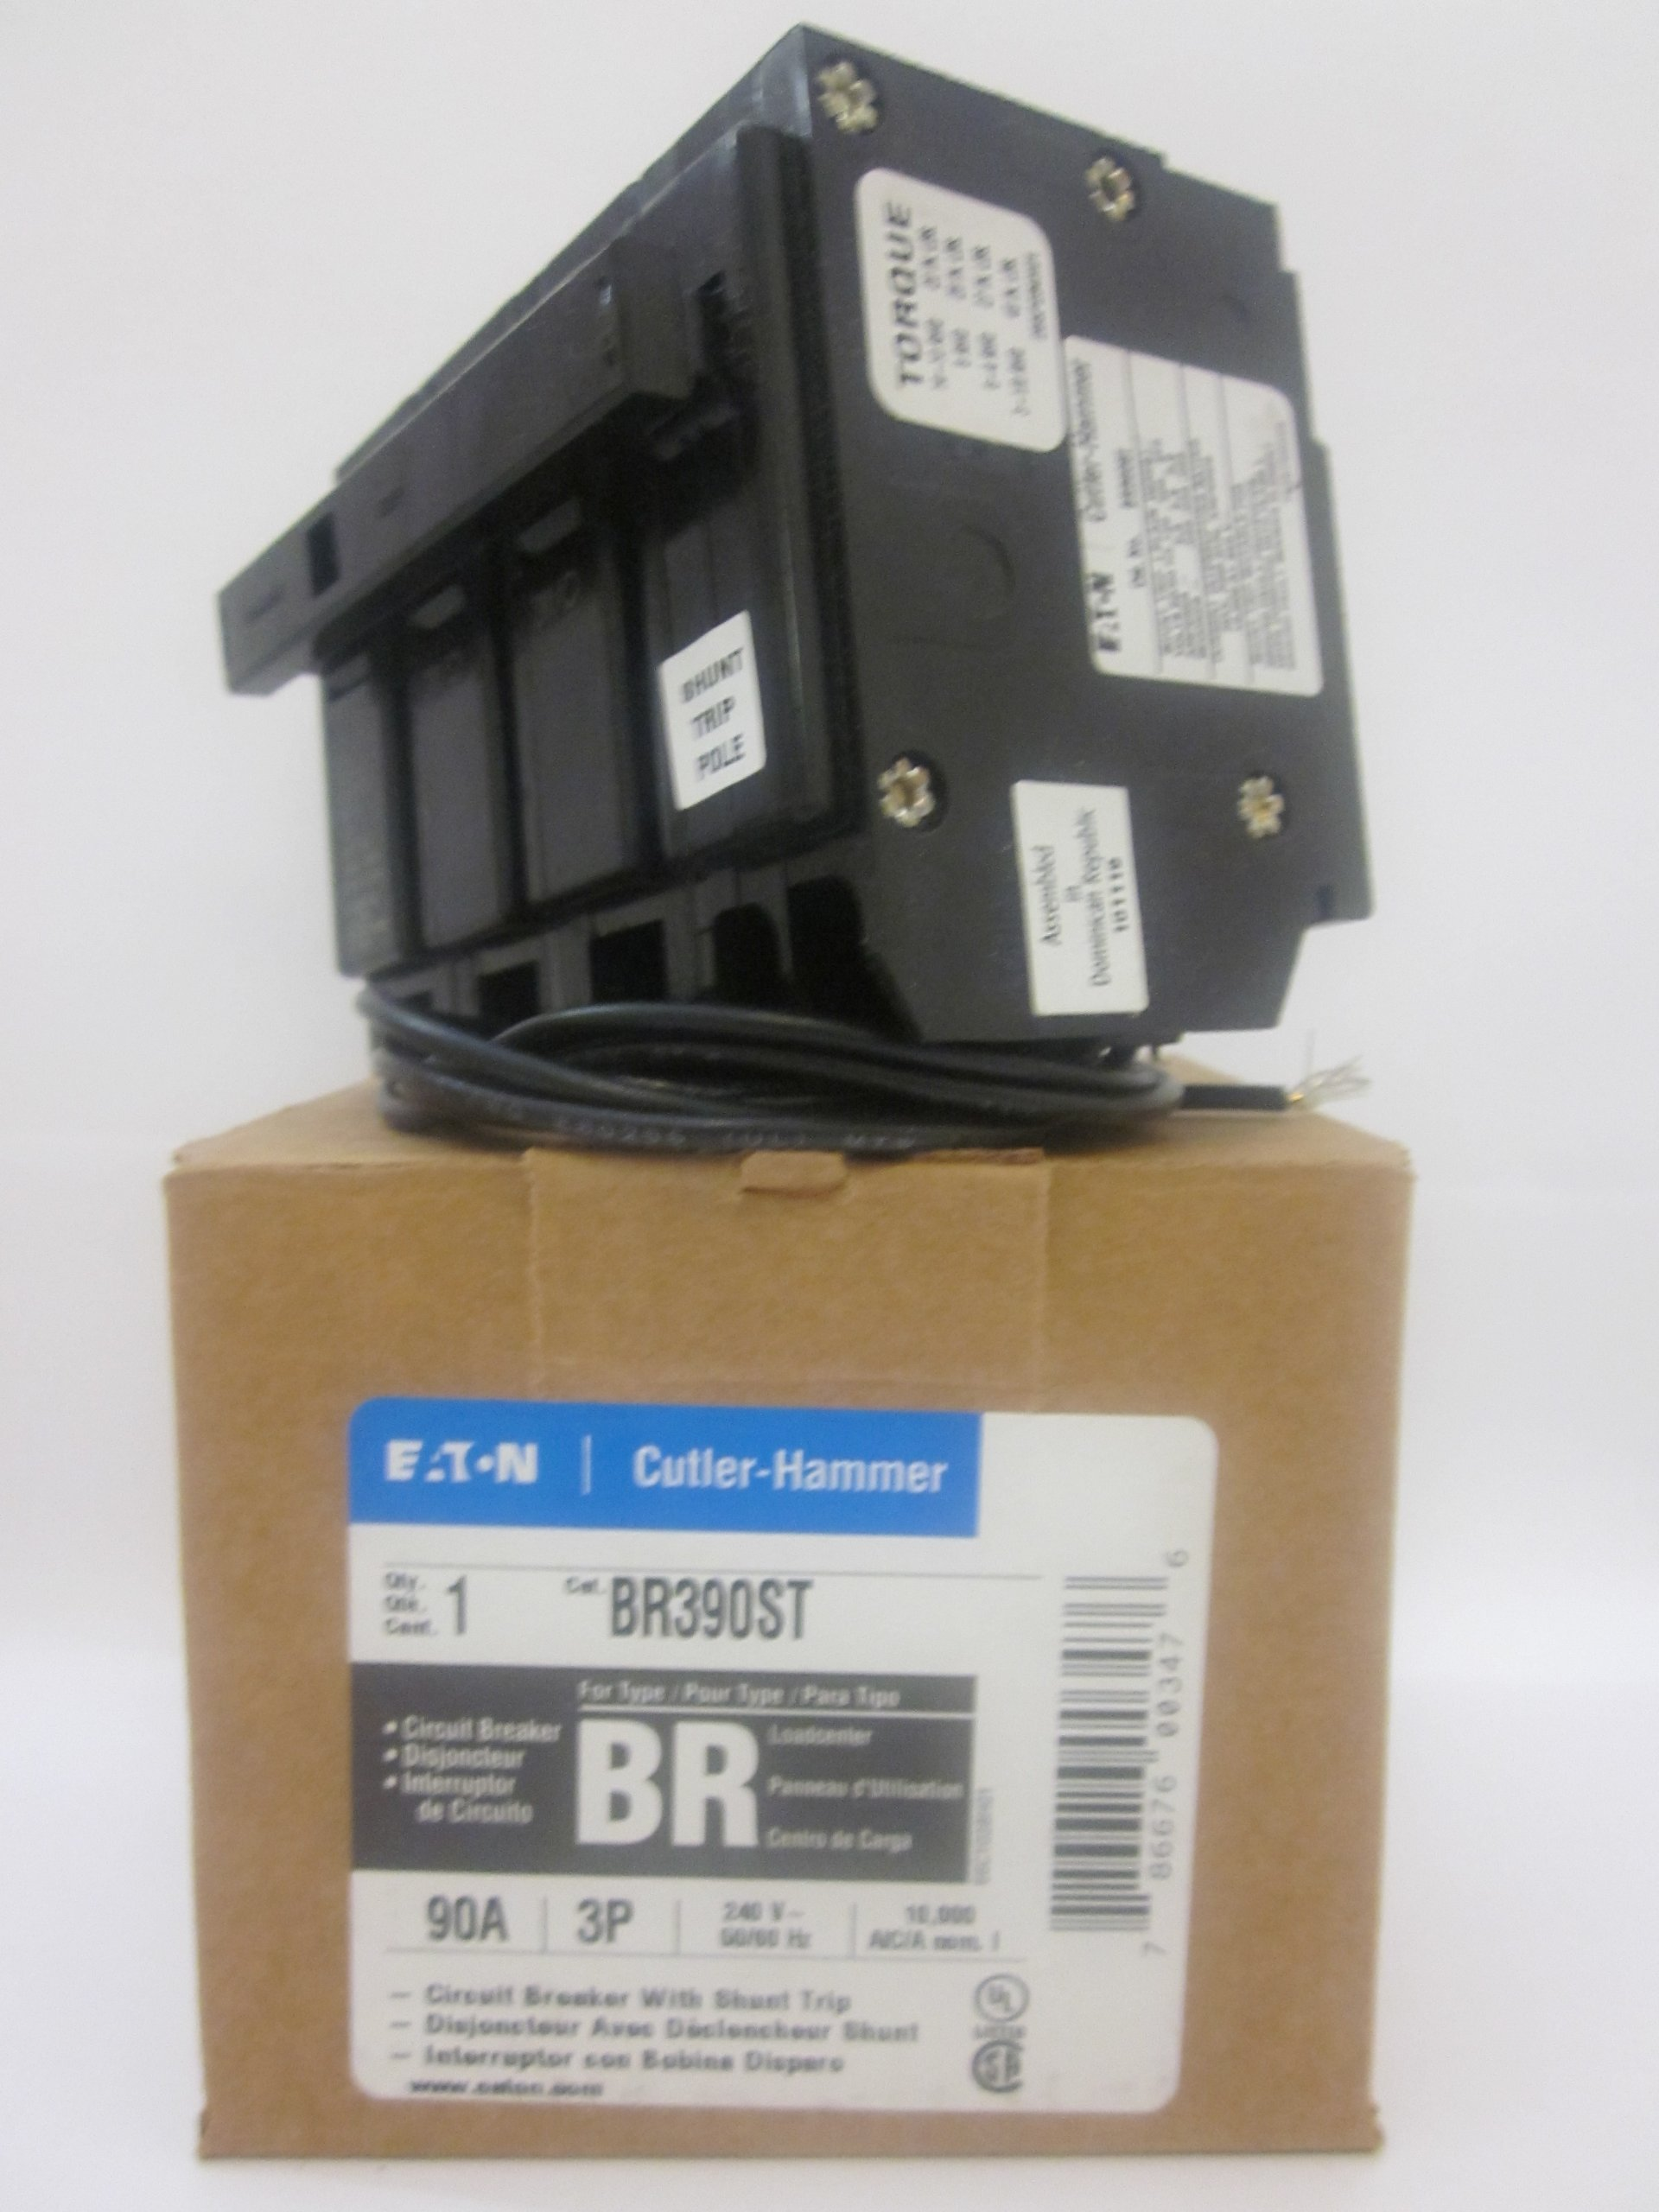 Cutler Hammer br390st Circuit Breaker, 3-Pole 90-Amp with shunt trip